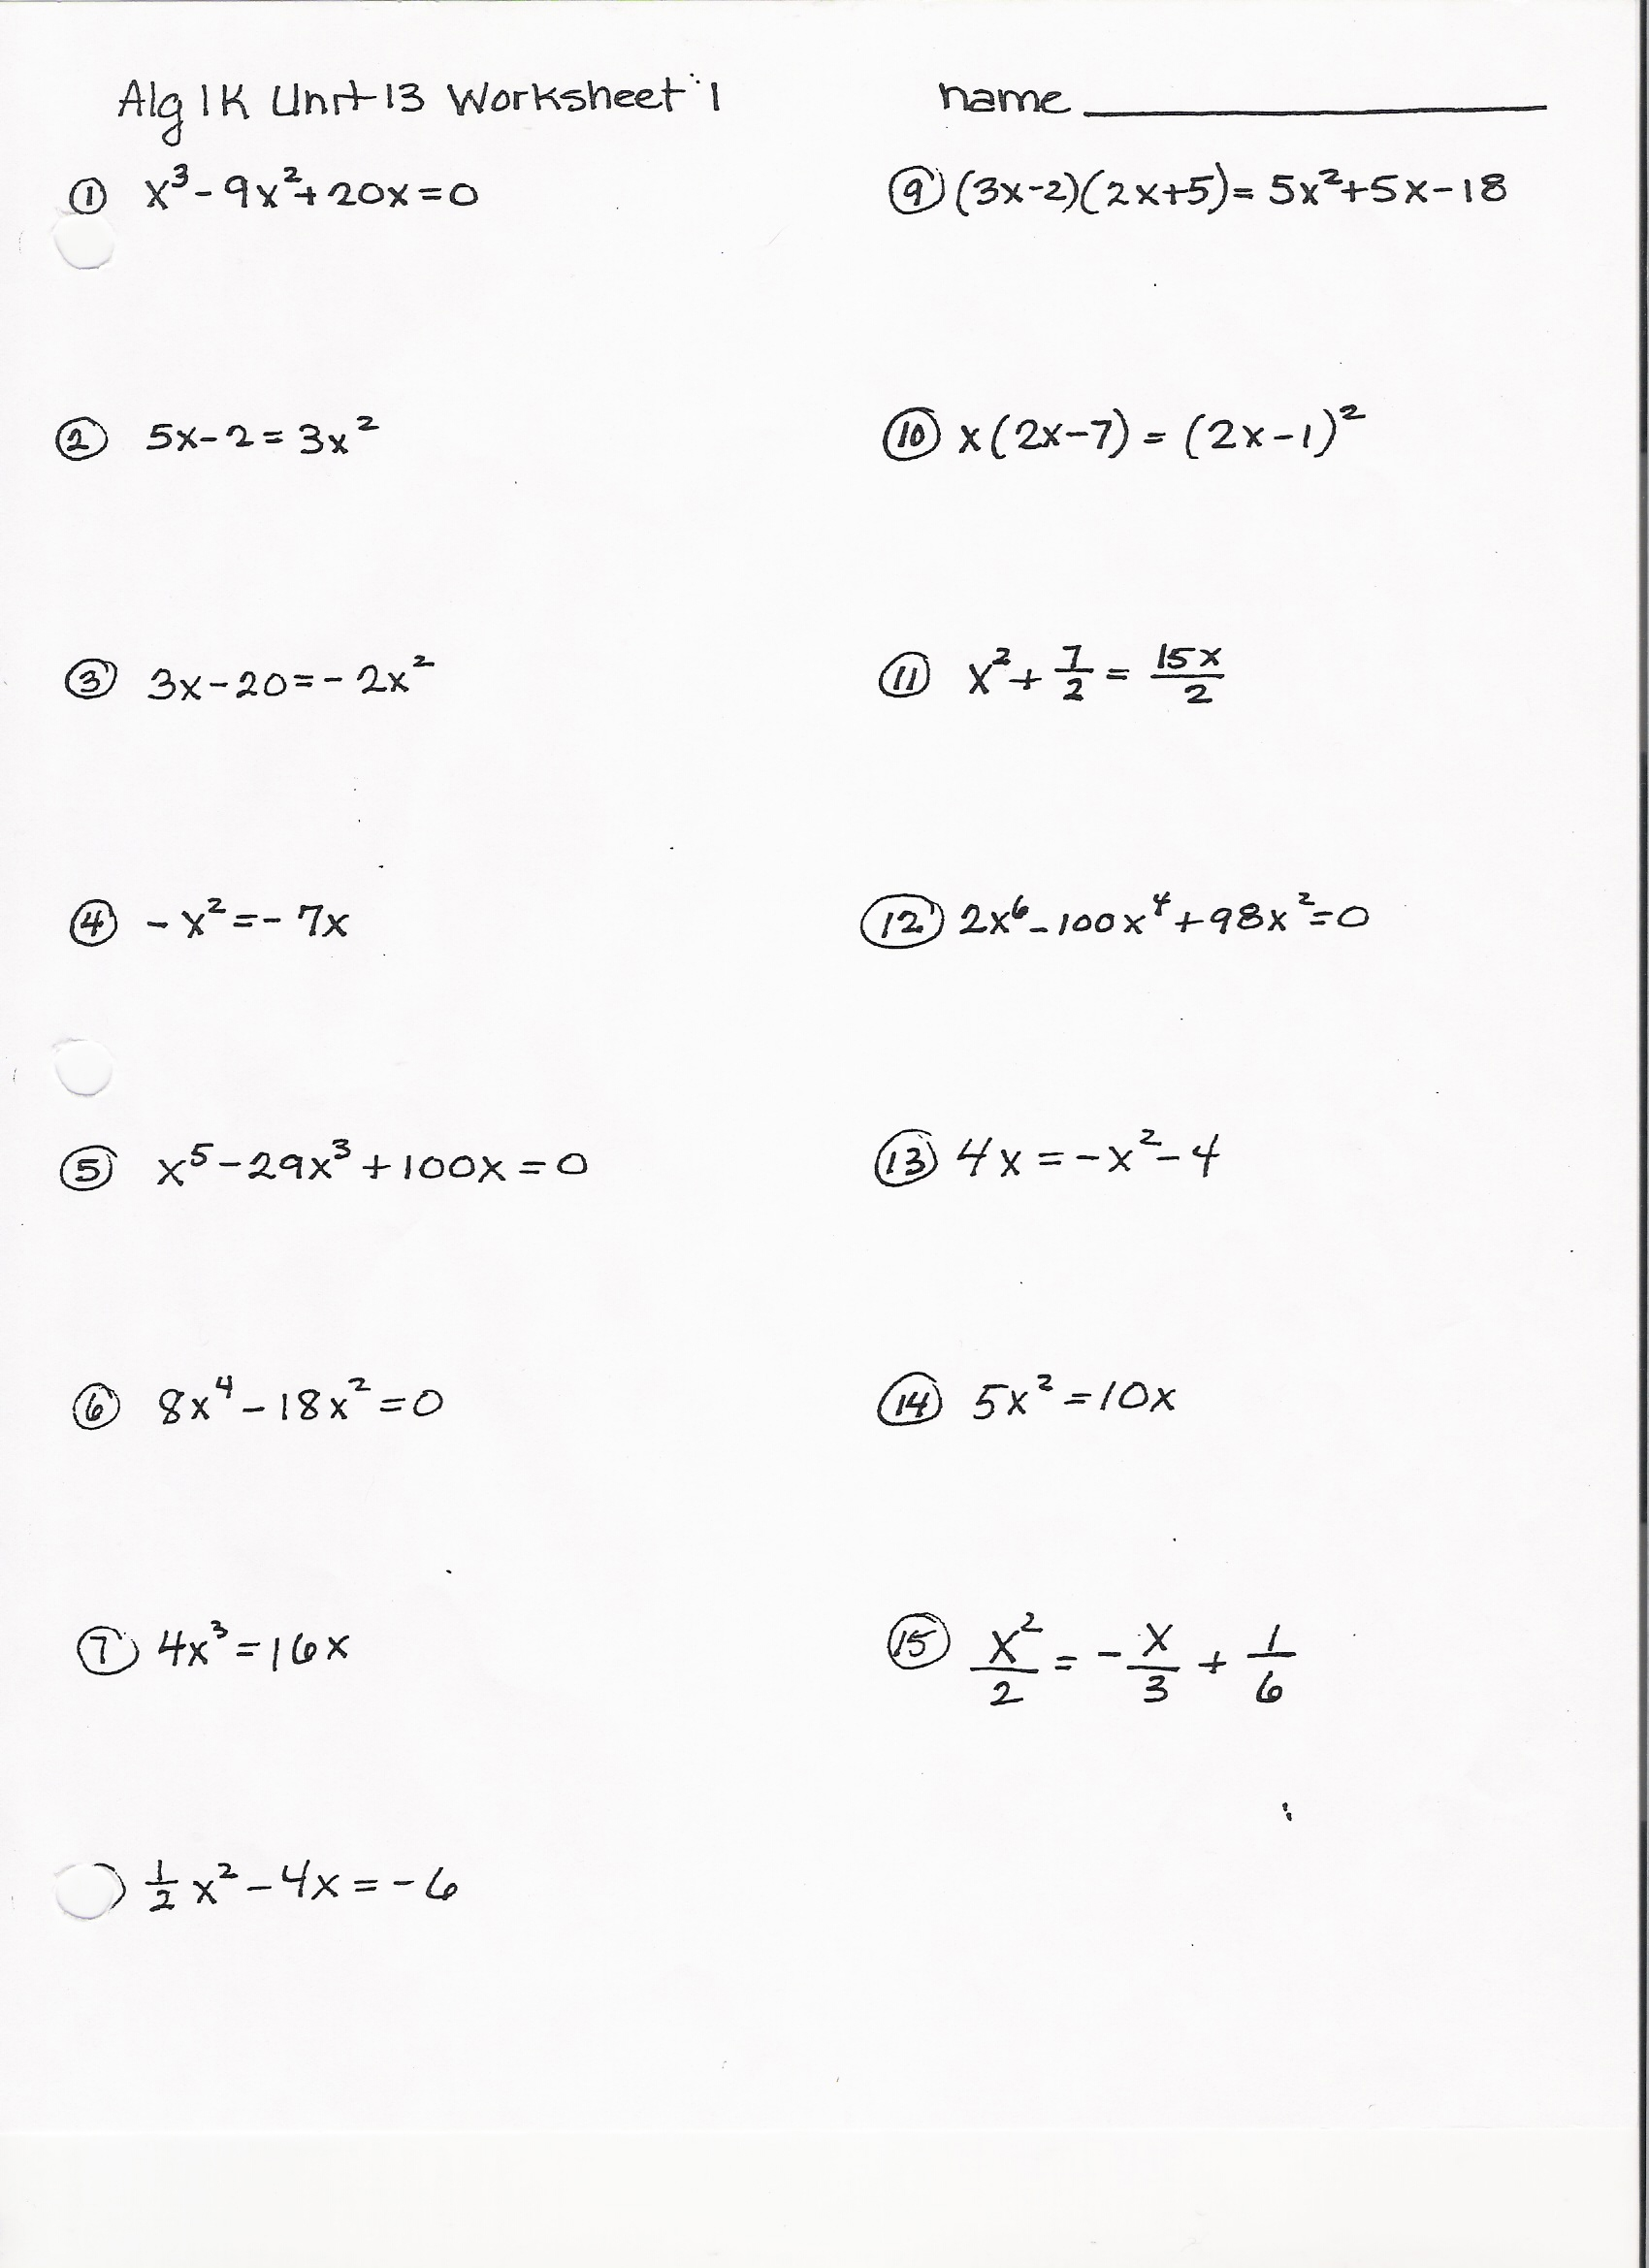 Multiplying Polynomials Worksheet 1 Answer Key